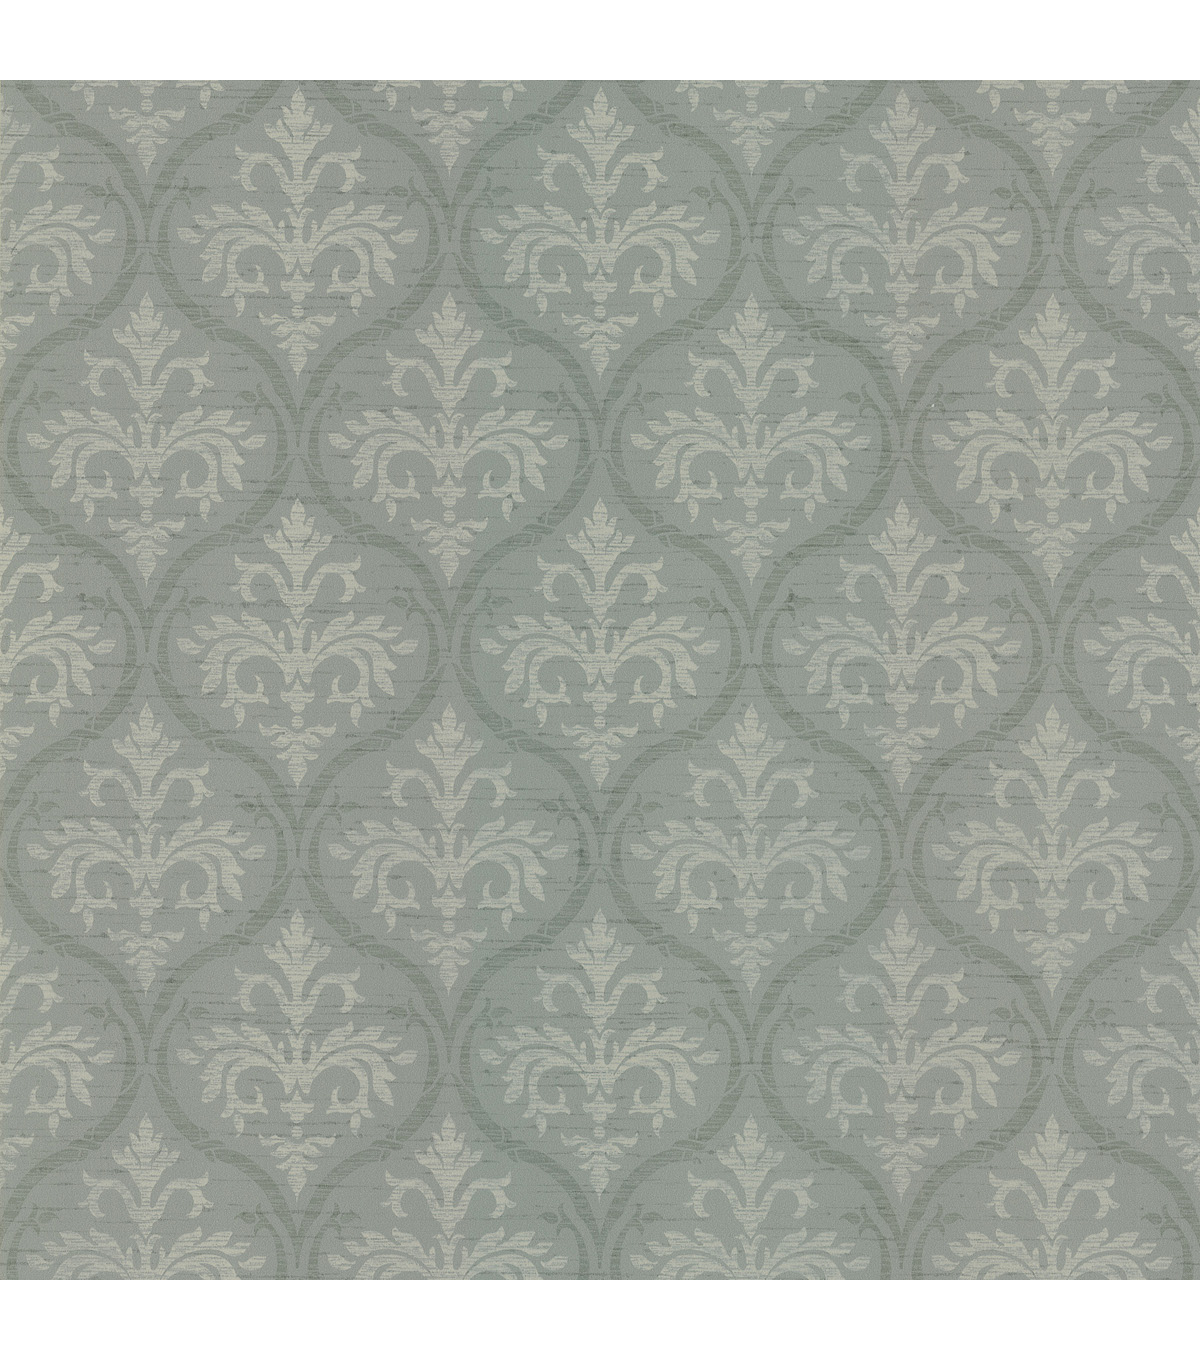 Florence Moss Ogee Damask Wallpaper